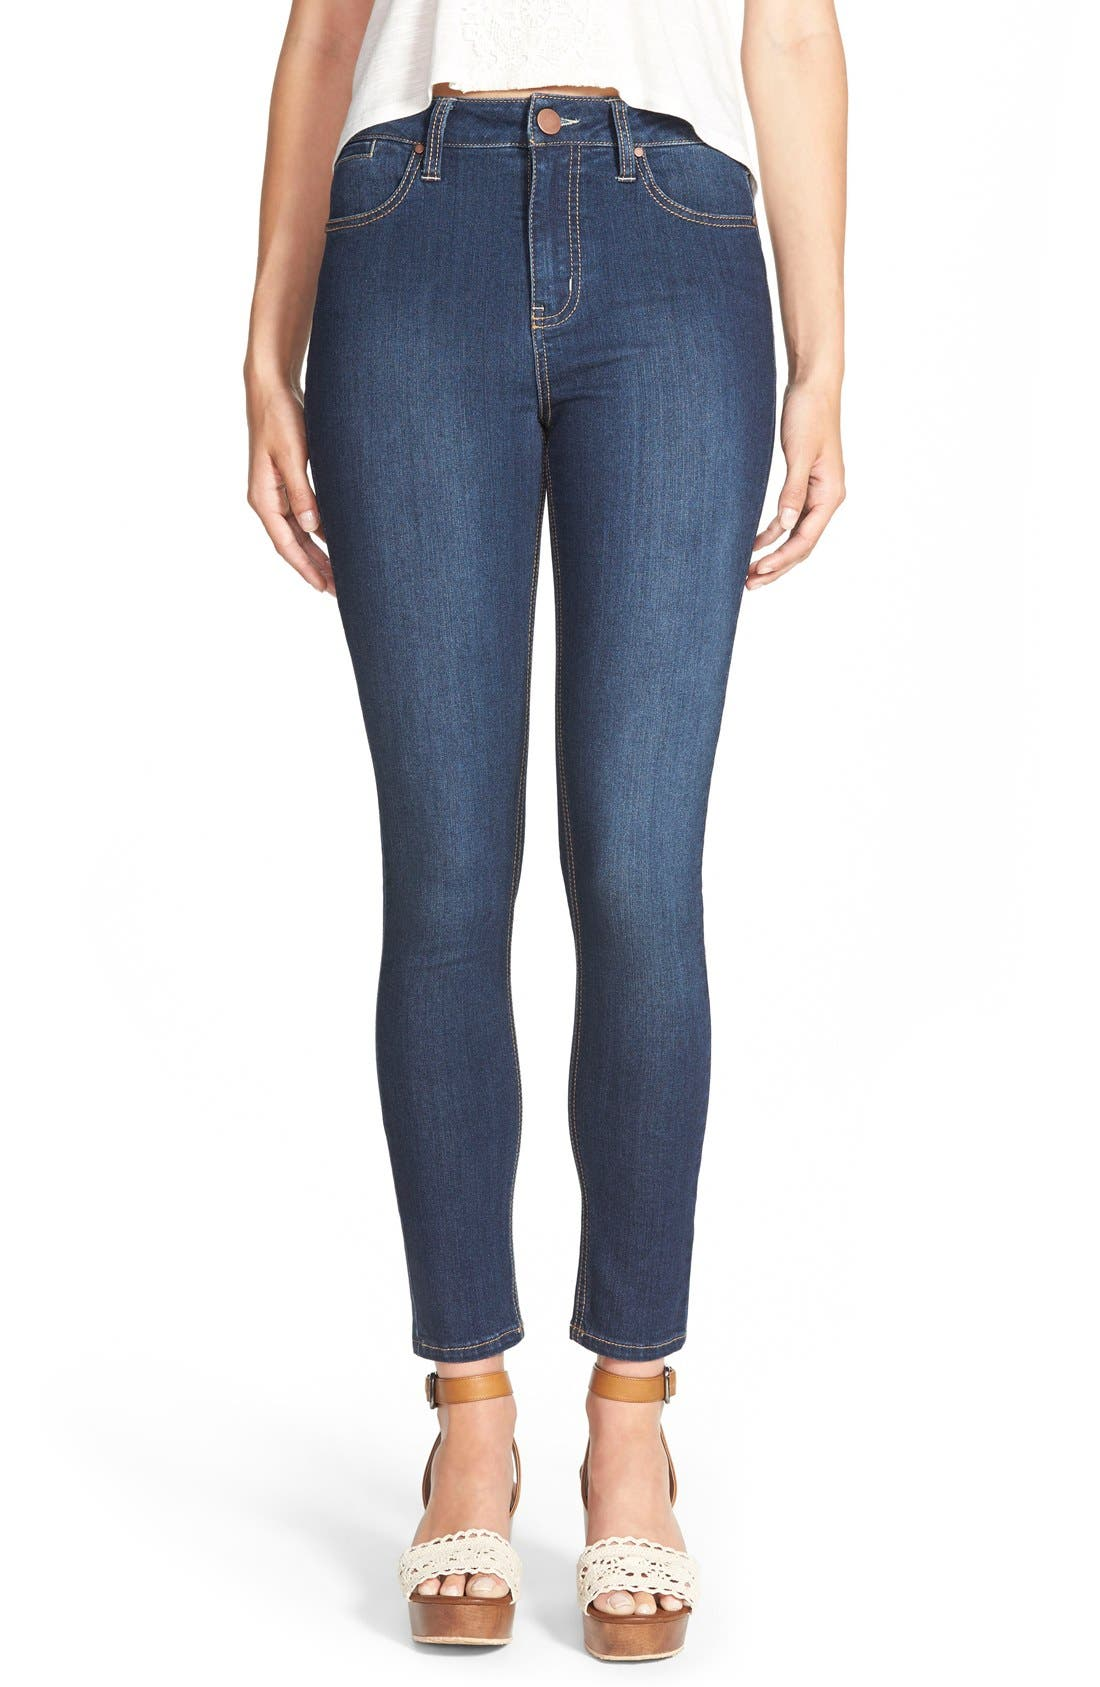 LOVE, FIRE Fire Skinny Jeans, Main, color, 400